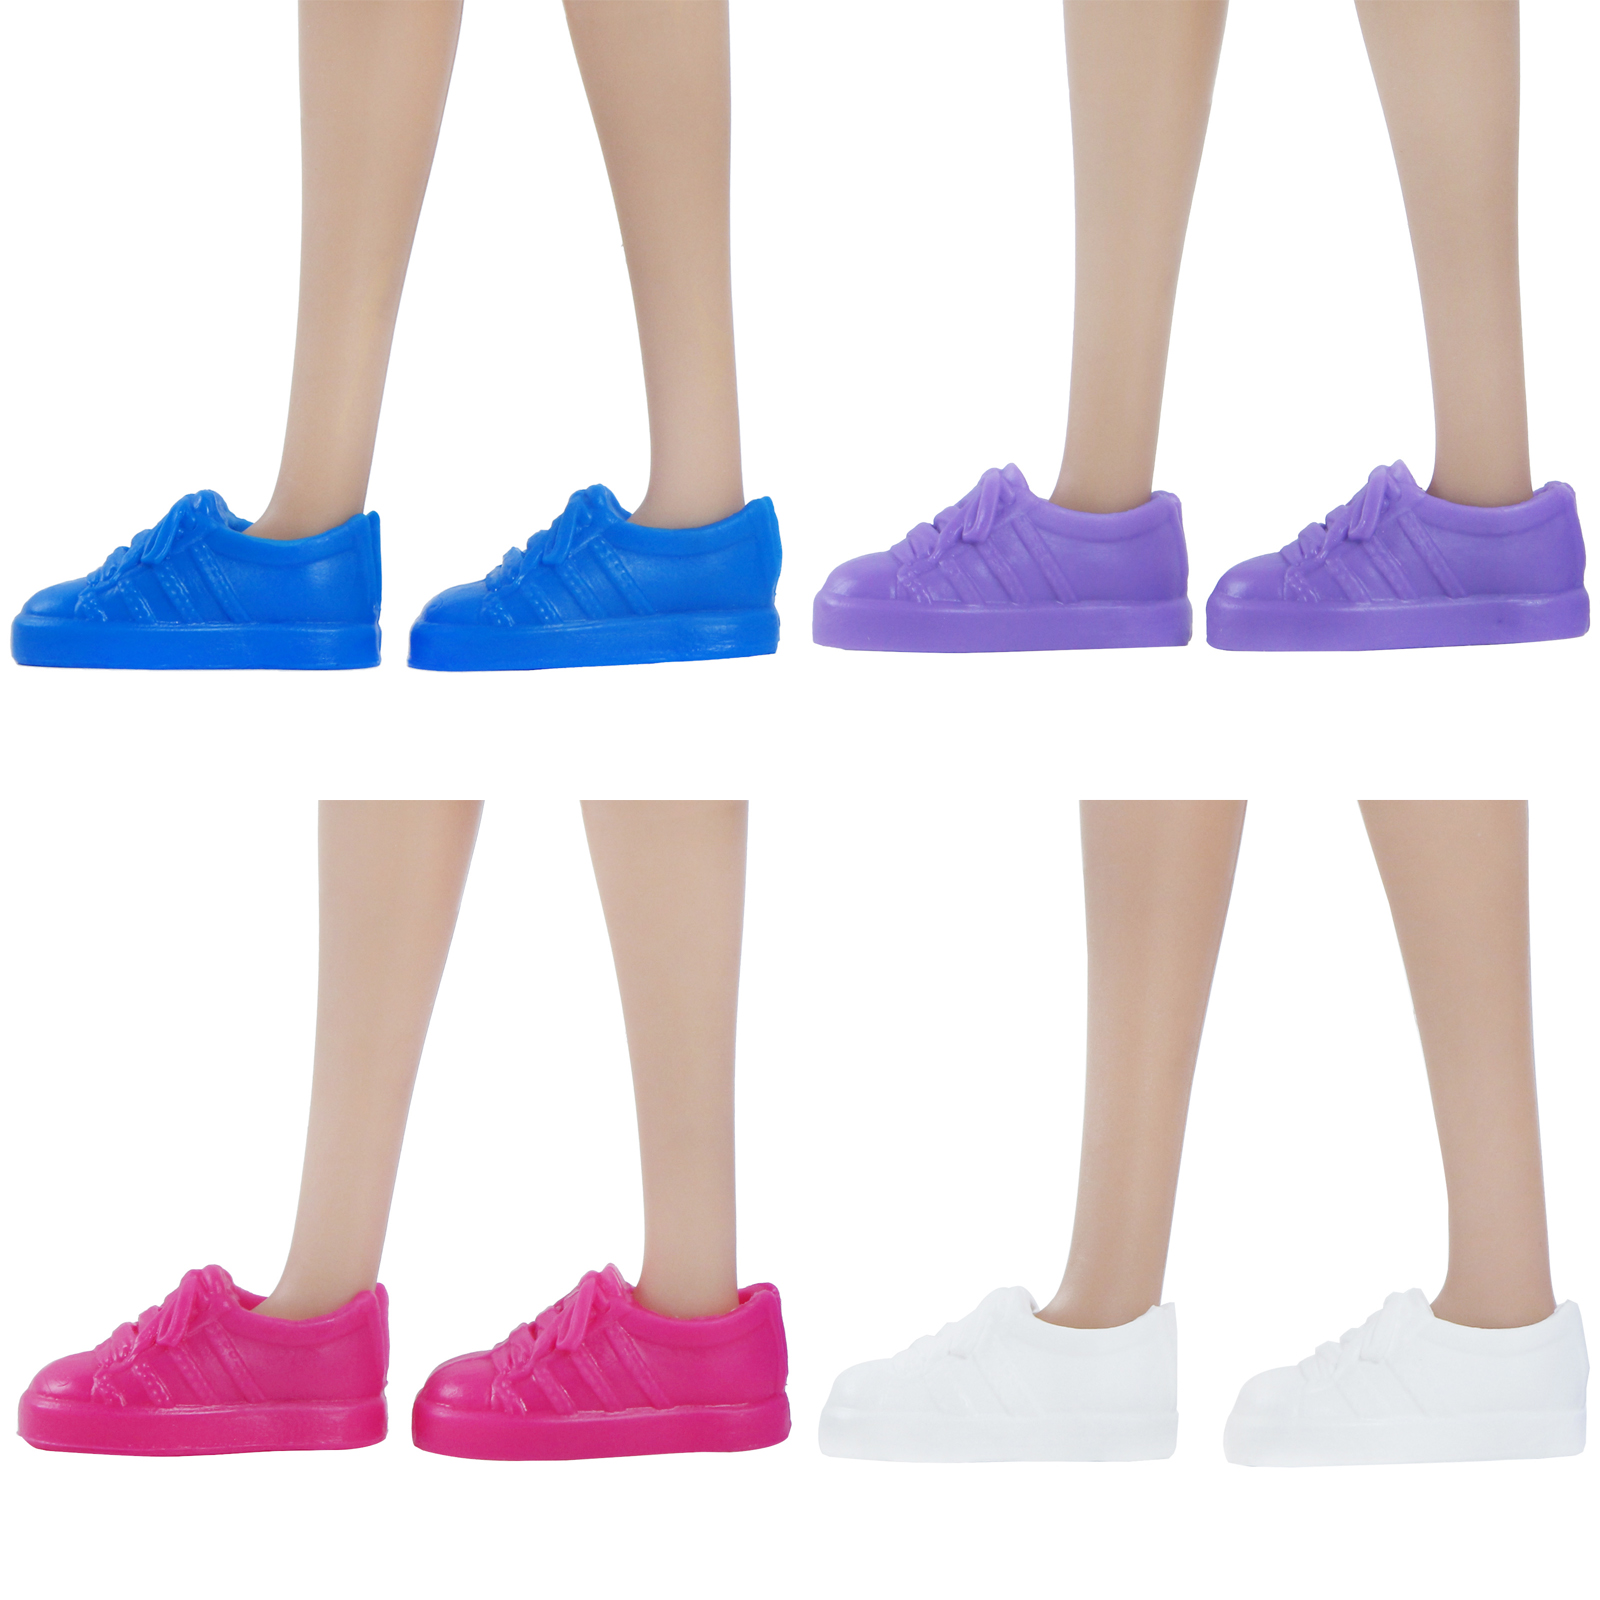 High Quality Flat Shoe Colourful Sandals Platform Shoes Dress Up Daily Casual Sneakers DIY Accessories For Barbie Doll DIY Toy